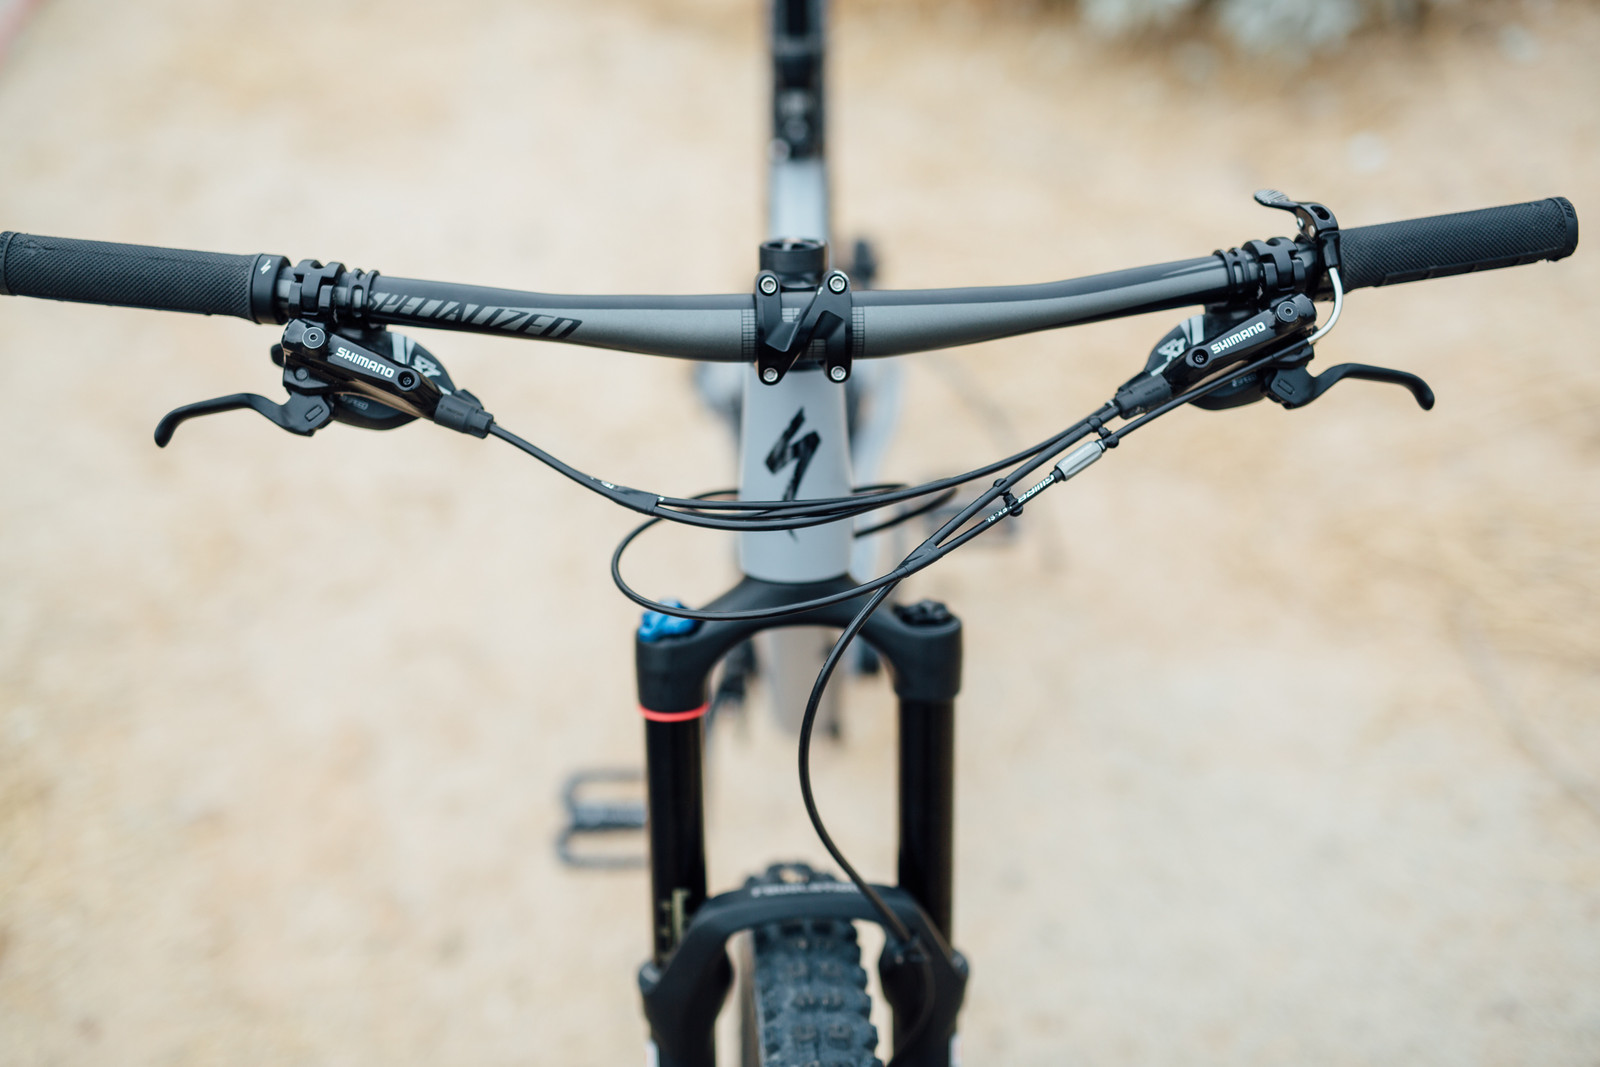 Specialized Rhyme FSR Comp 650b - 2016 Vital MTB Test Sessions - Specialized Rhyme FSR Comp 650b - 2016 Vital MTB Test Sessions - Mountain Biking Pictures - Vital MTB